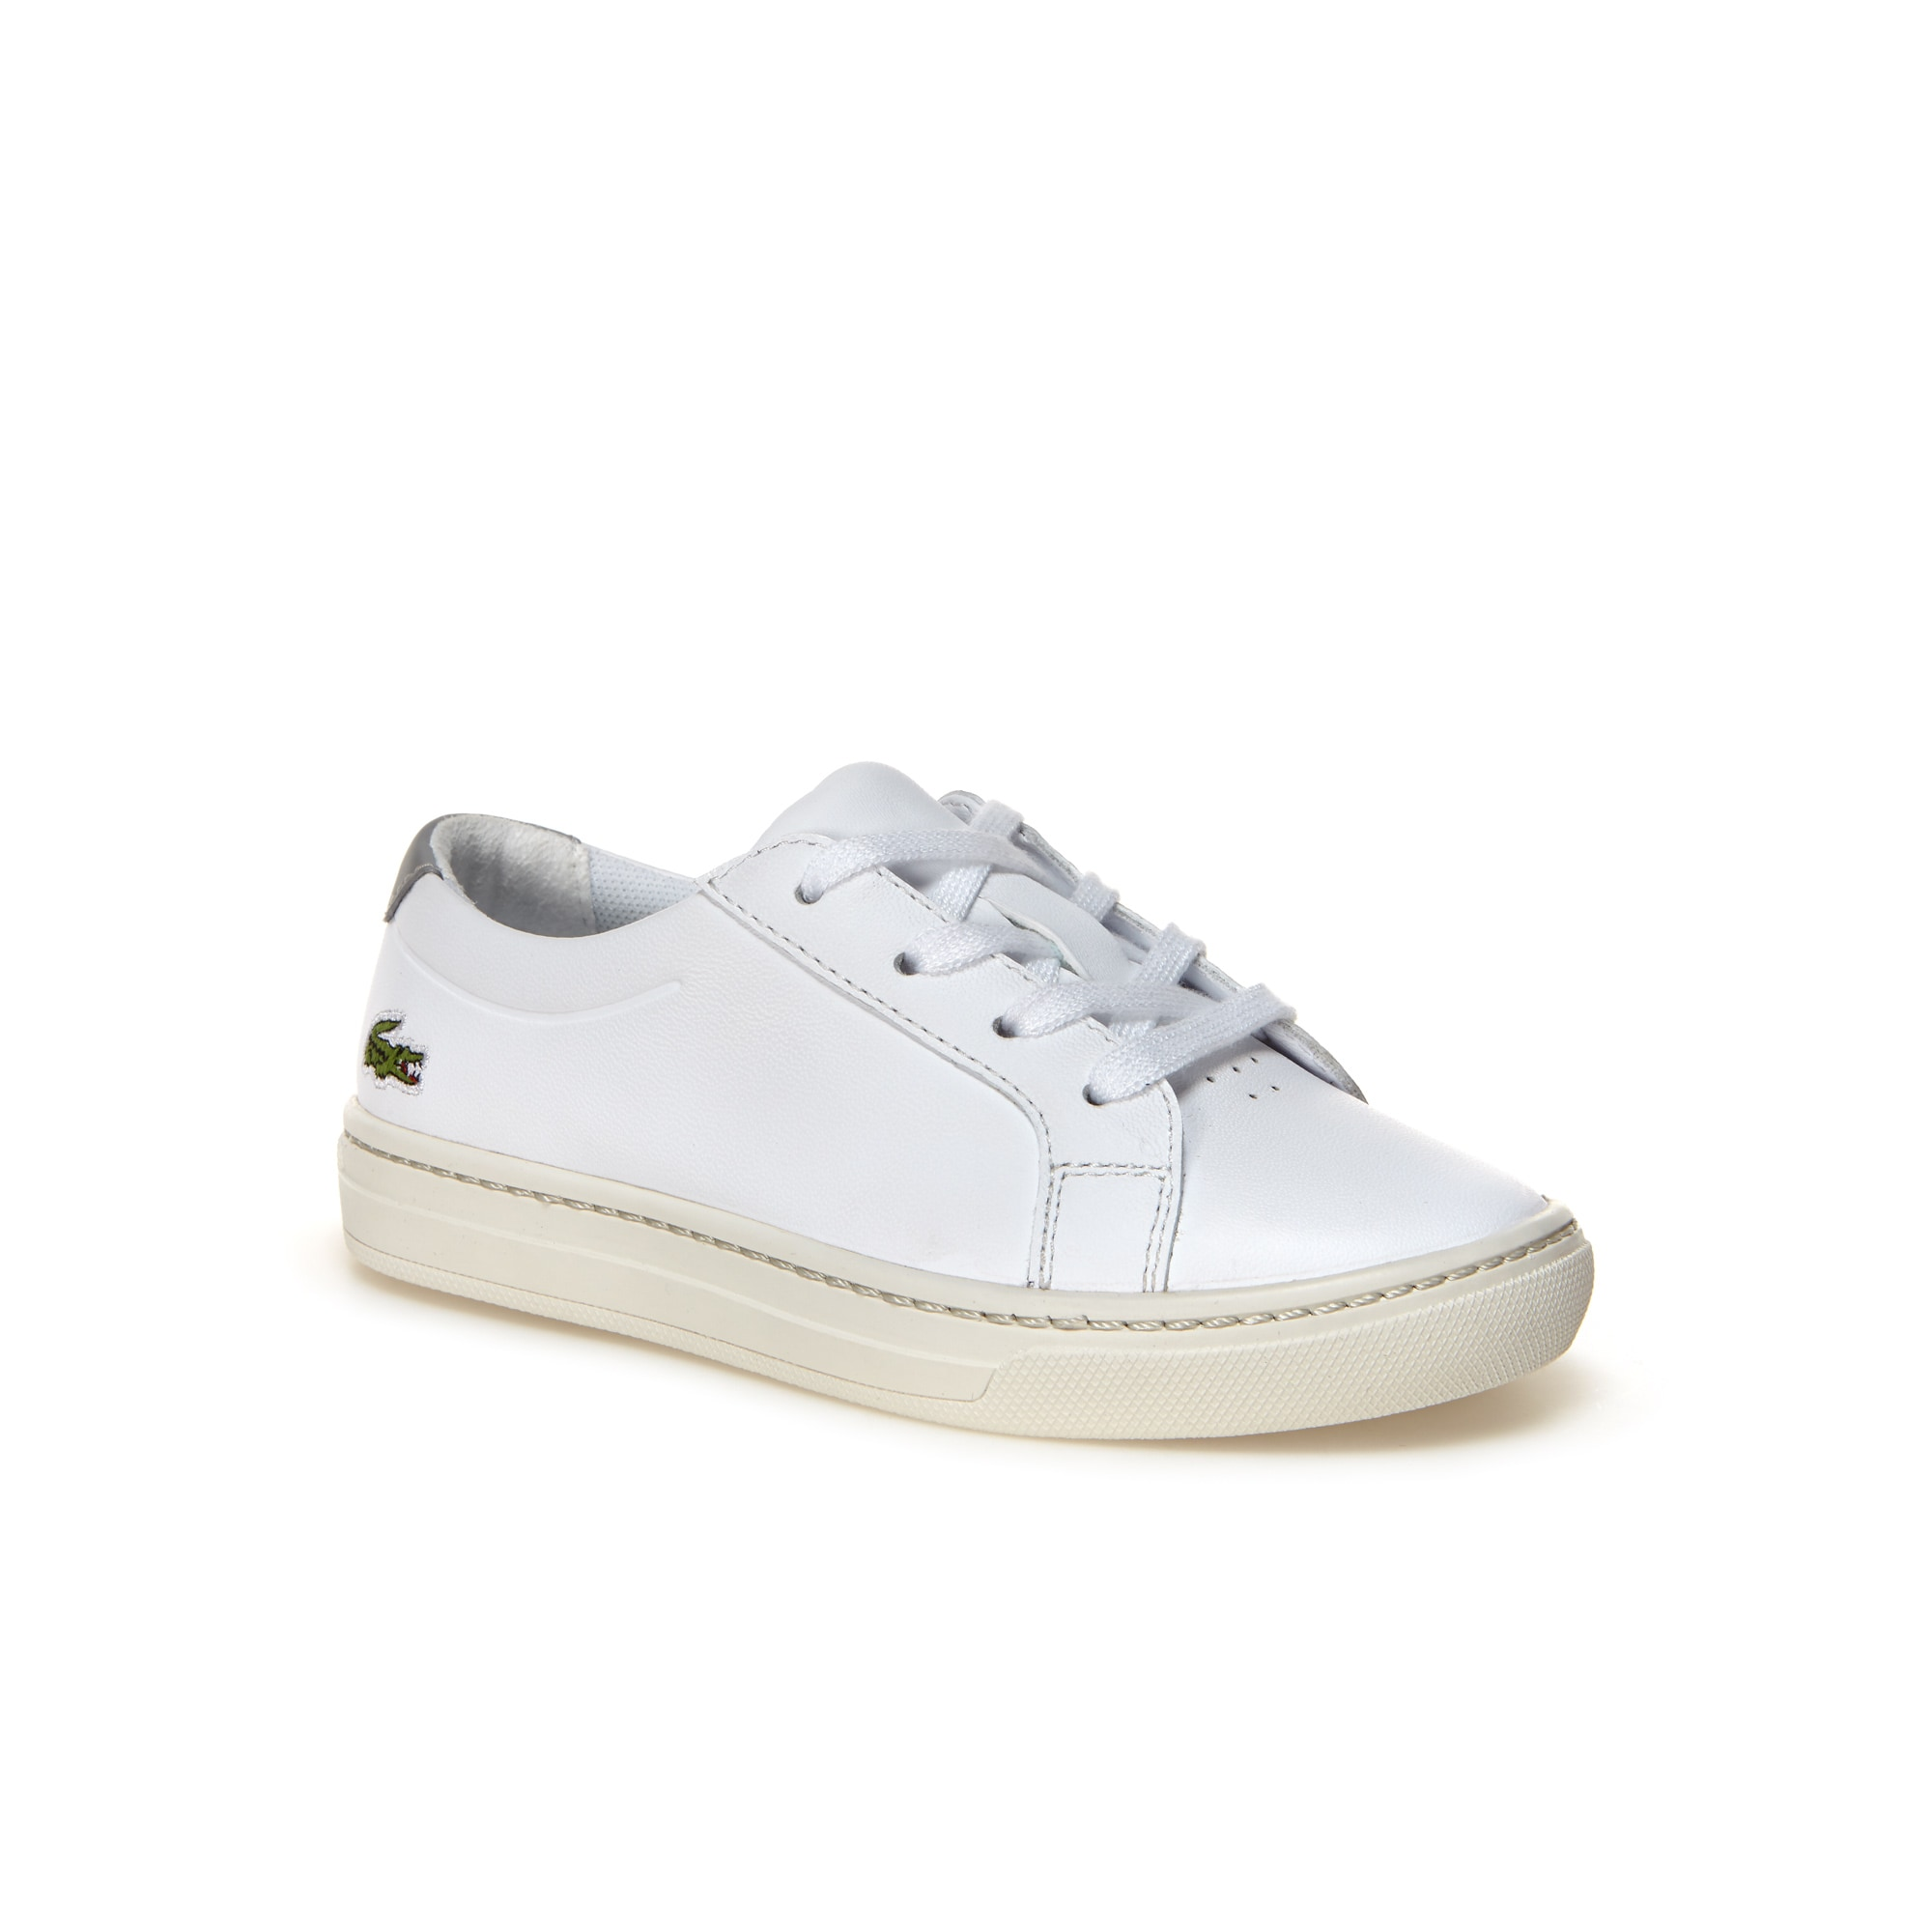 Kids' L.12.12 Leather Trainers